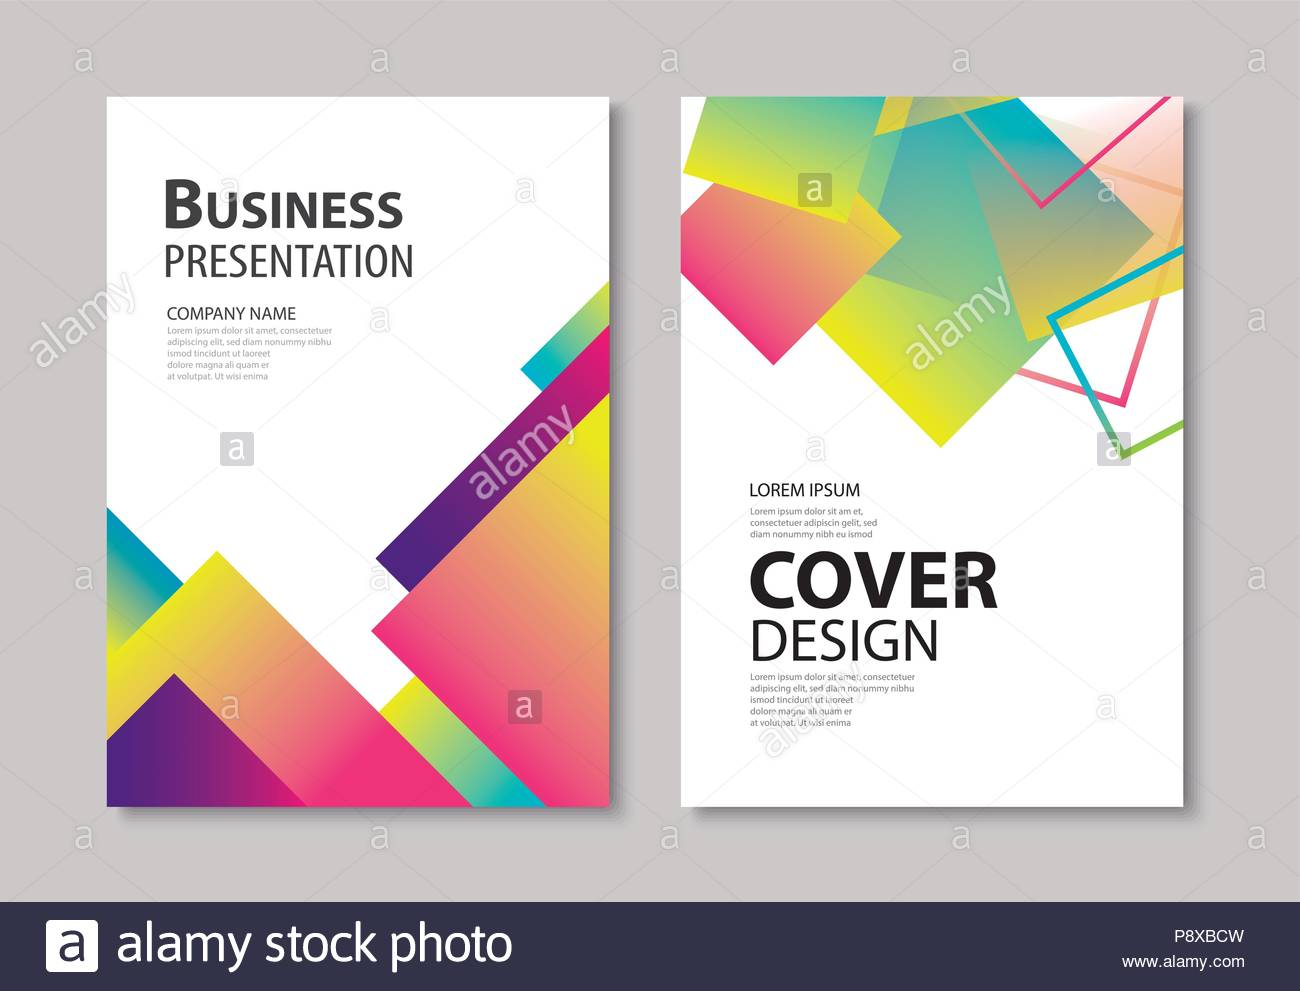 School Magazine Book Cover Design : Abstract modern geometric cover and brochure design